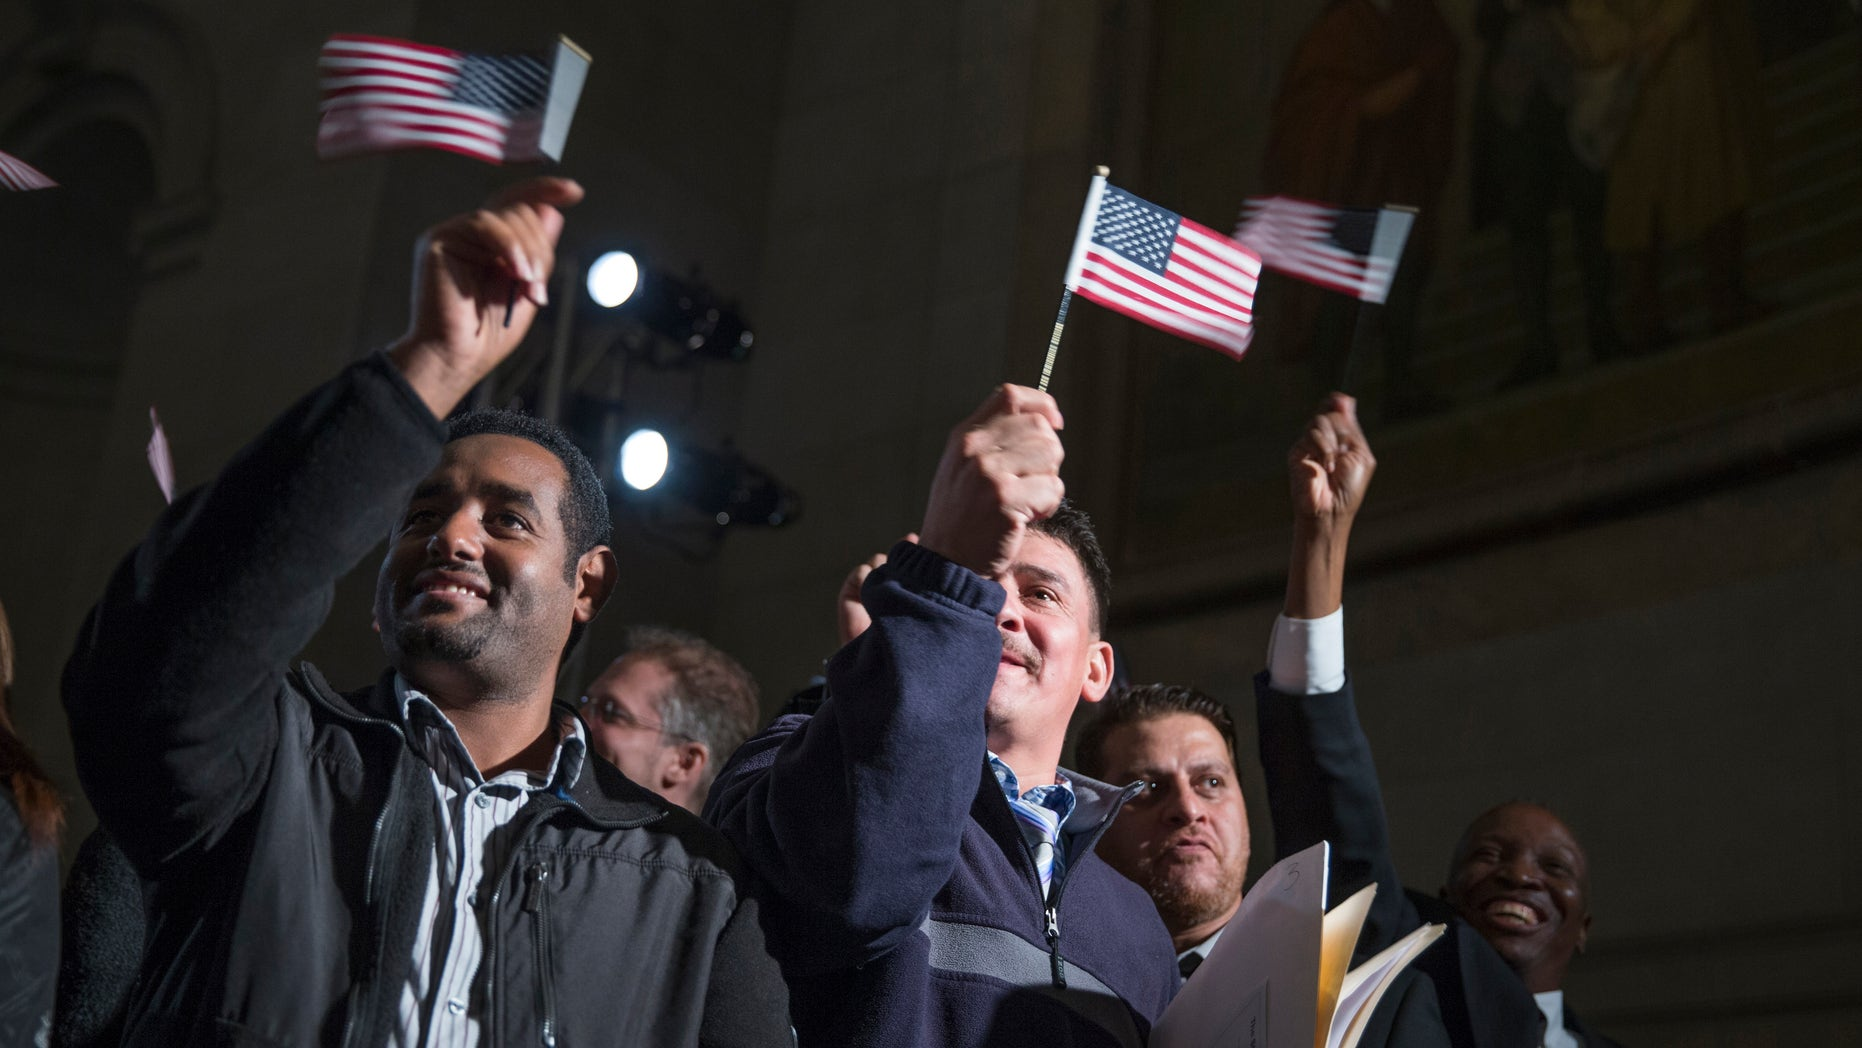 """Participants in a naturalization ceremony wave flags after taking the """"Oath of Allegiance"""" at an event attended by President Barack Obama at the National Archive in Washington, Tuesday, Dec. 15, 2015. The president spoke at the National Archives Museum, where 31 immigrants from Iraq, Ethiopia, Uganda and 23 other nations are being sworn in as U.S. citizens. (AP Photo/Evan Vucci)"""